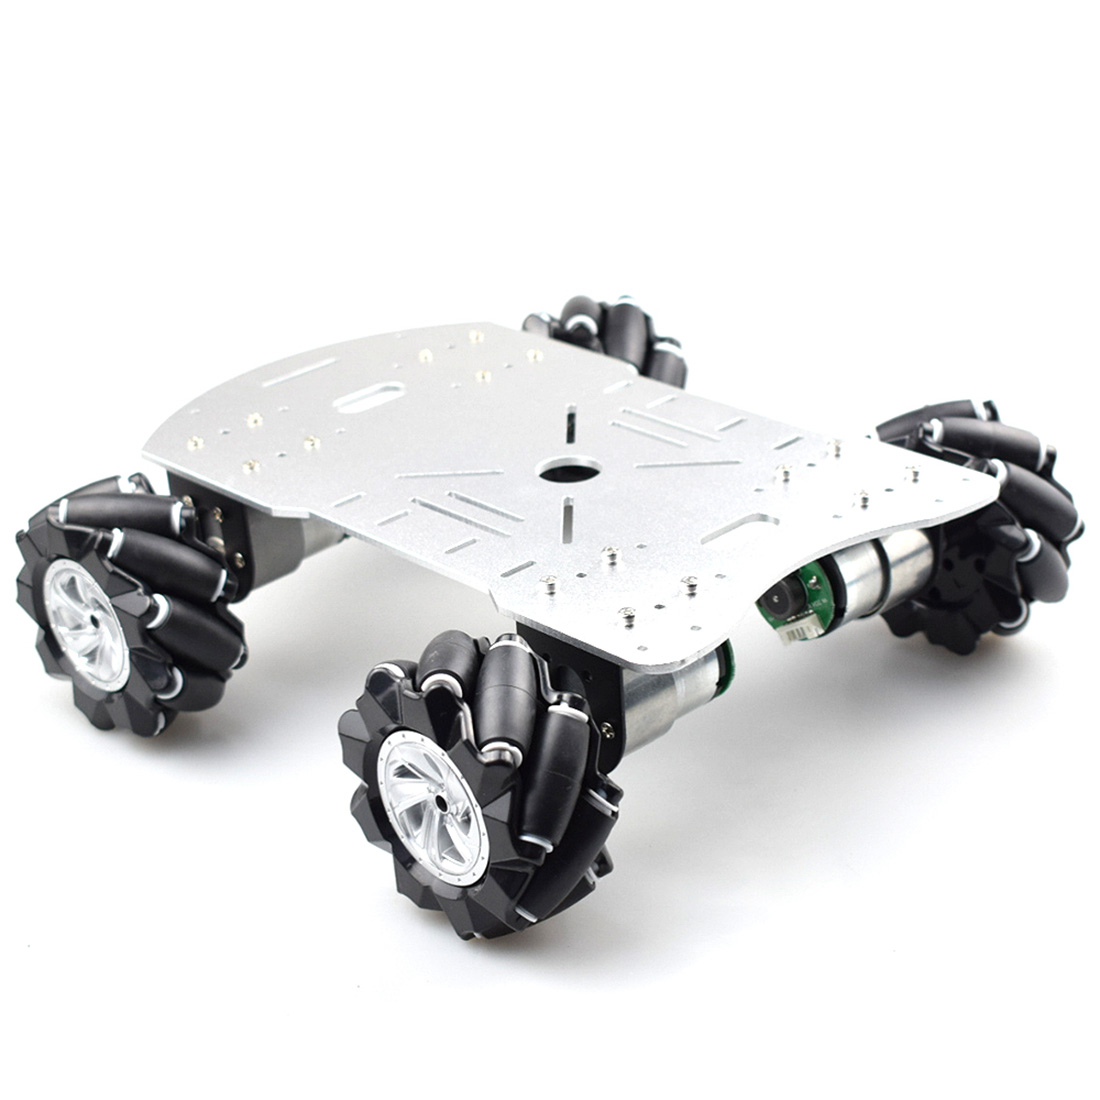 New 80mm Mecanum Metal Platform Kit DIY Omni-Directional Mecanum Wheel Robot Car Without Electronic Control - Silver